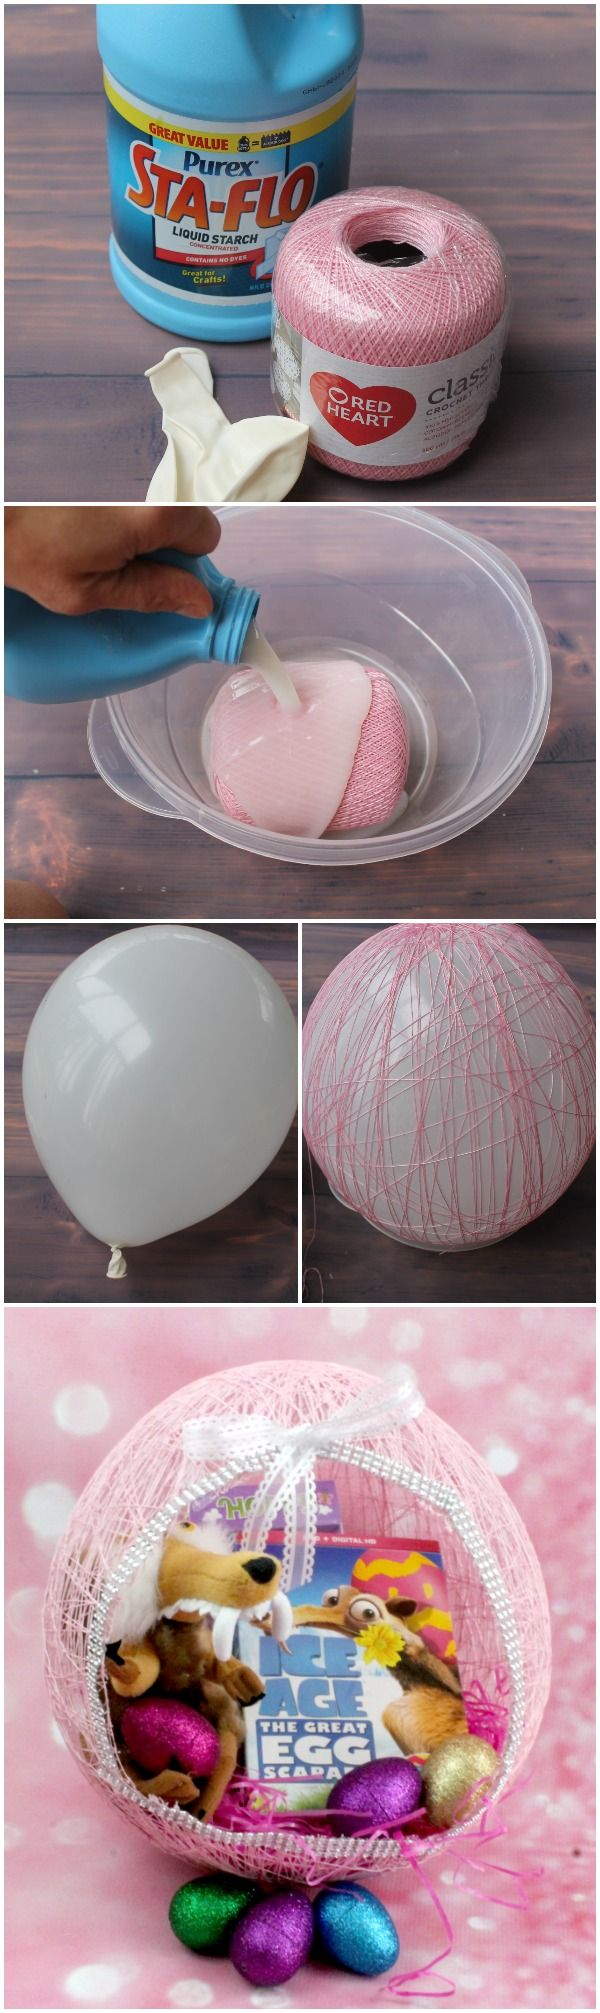 DIY String Easter Egg Baskets are super easy to make and very inexpensive. This Easter Egg Yarn Balloon Basket is a great DIY Easter Basket for Kids. #IceAgeEaster #AD